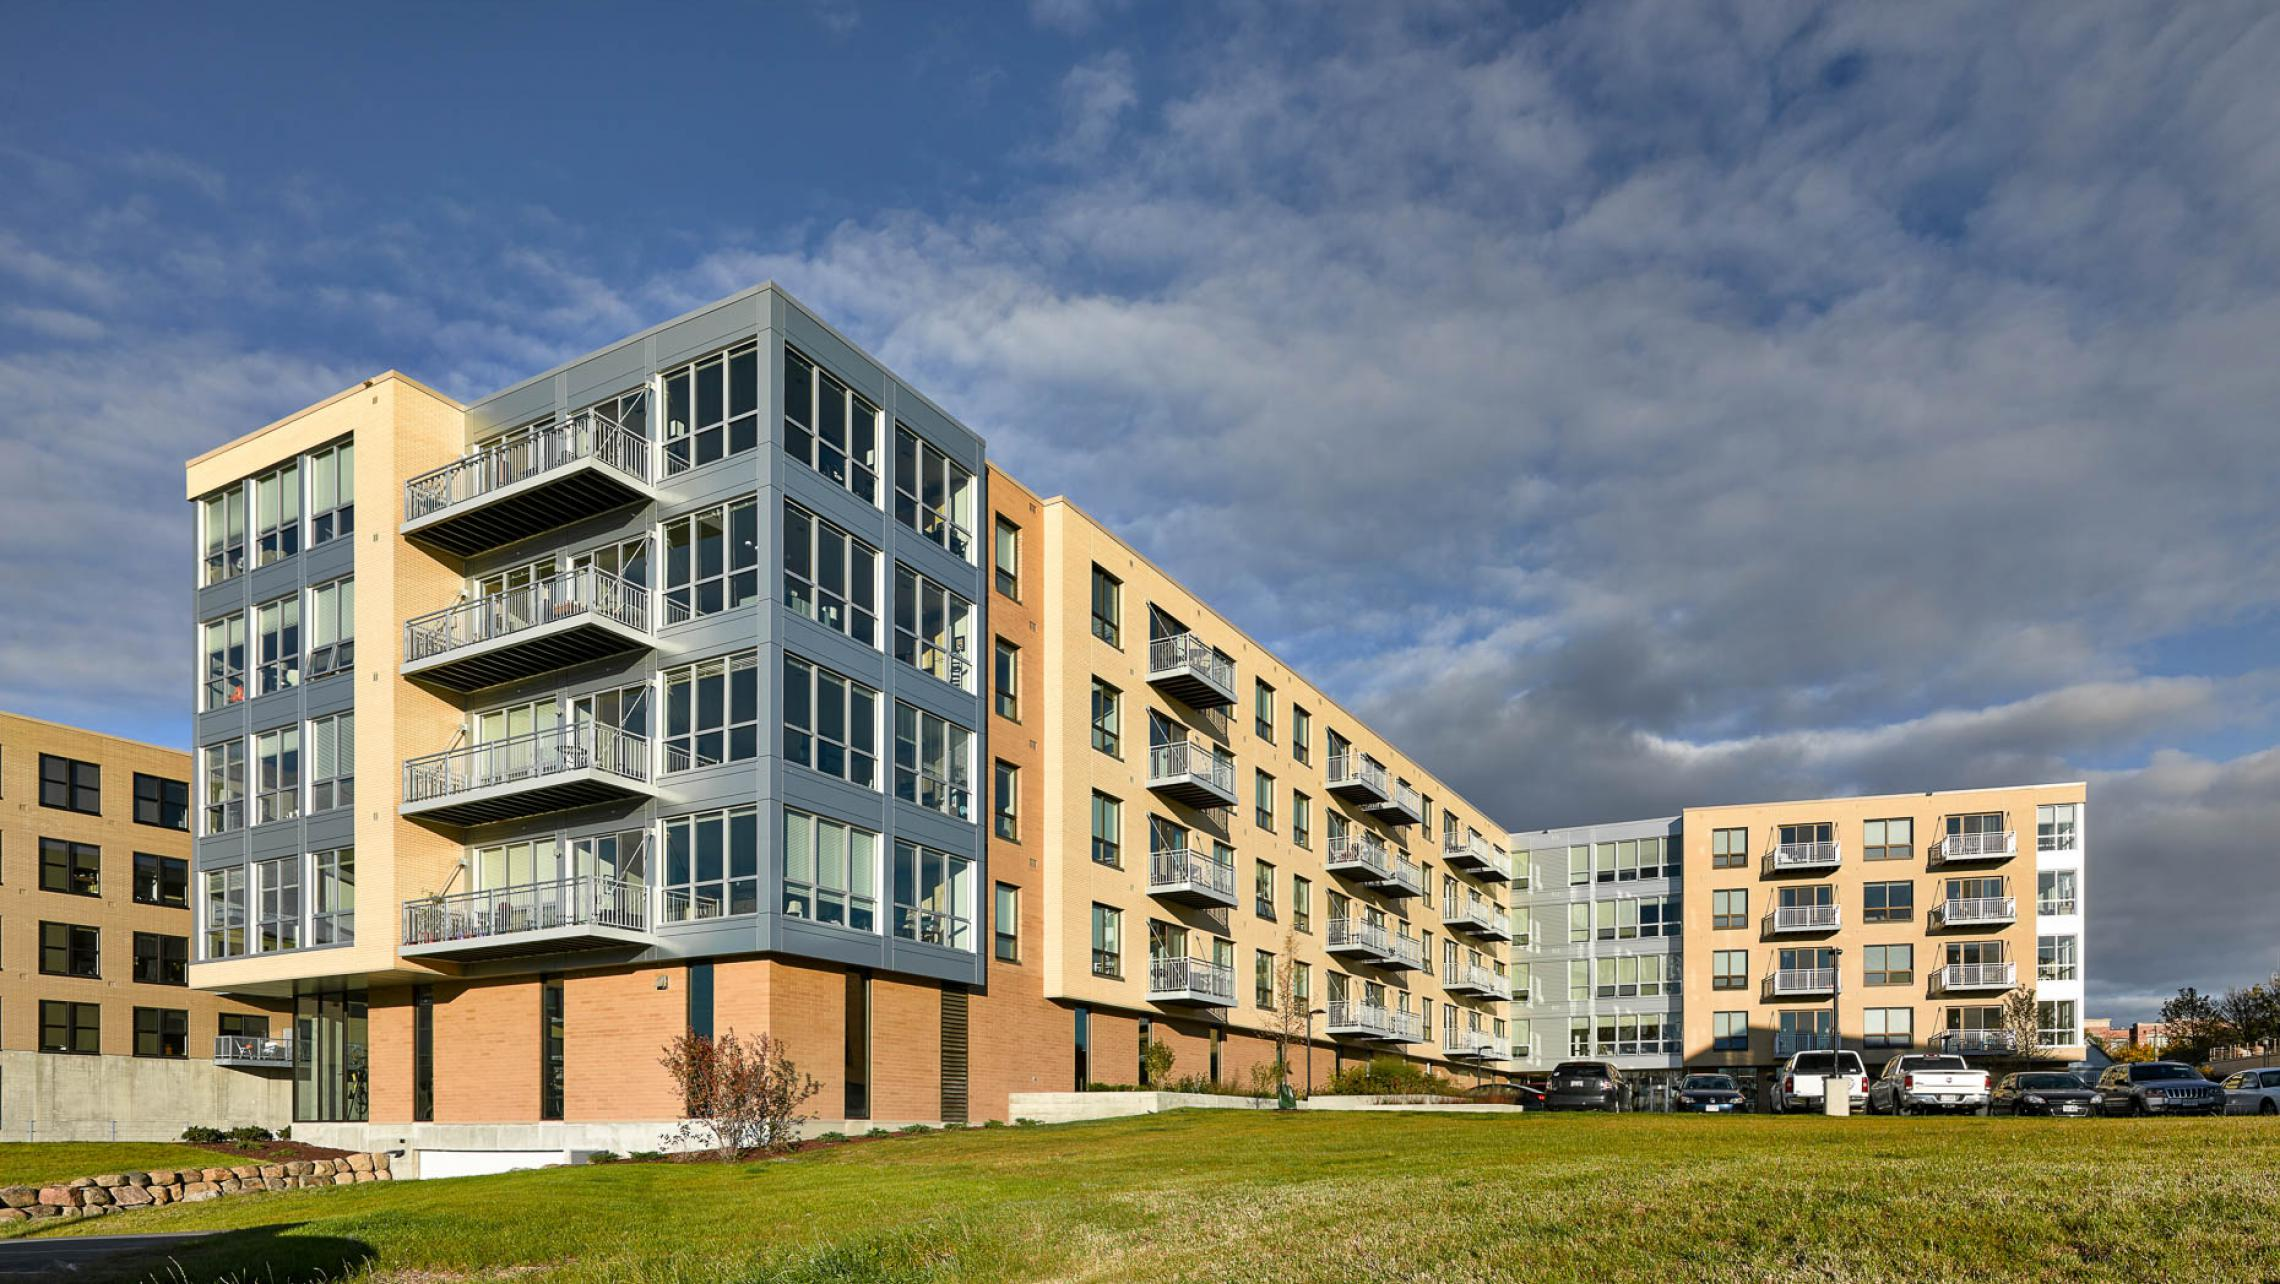 ULI Nine Line Apartments